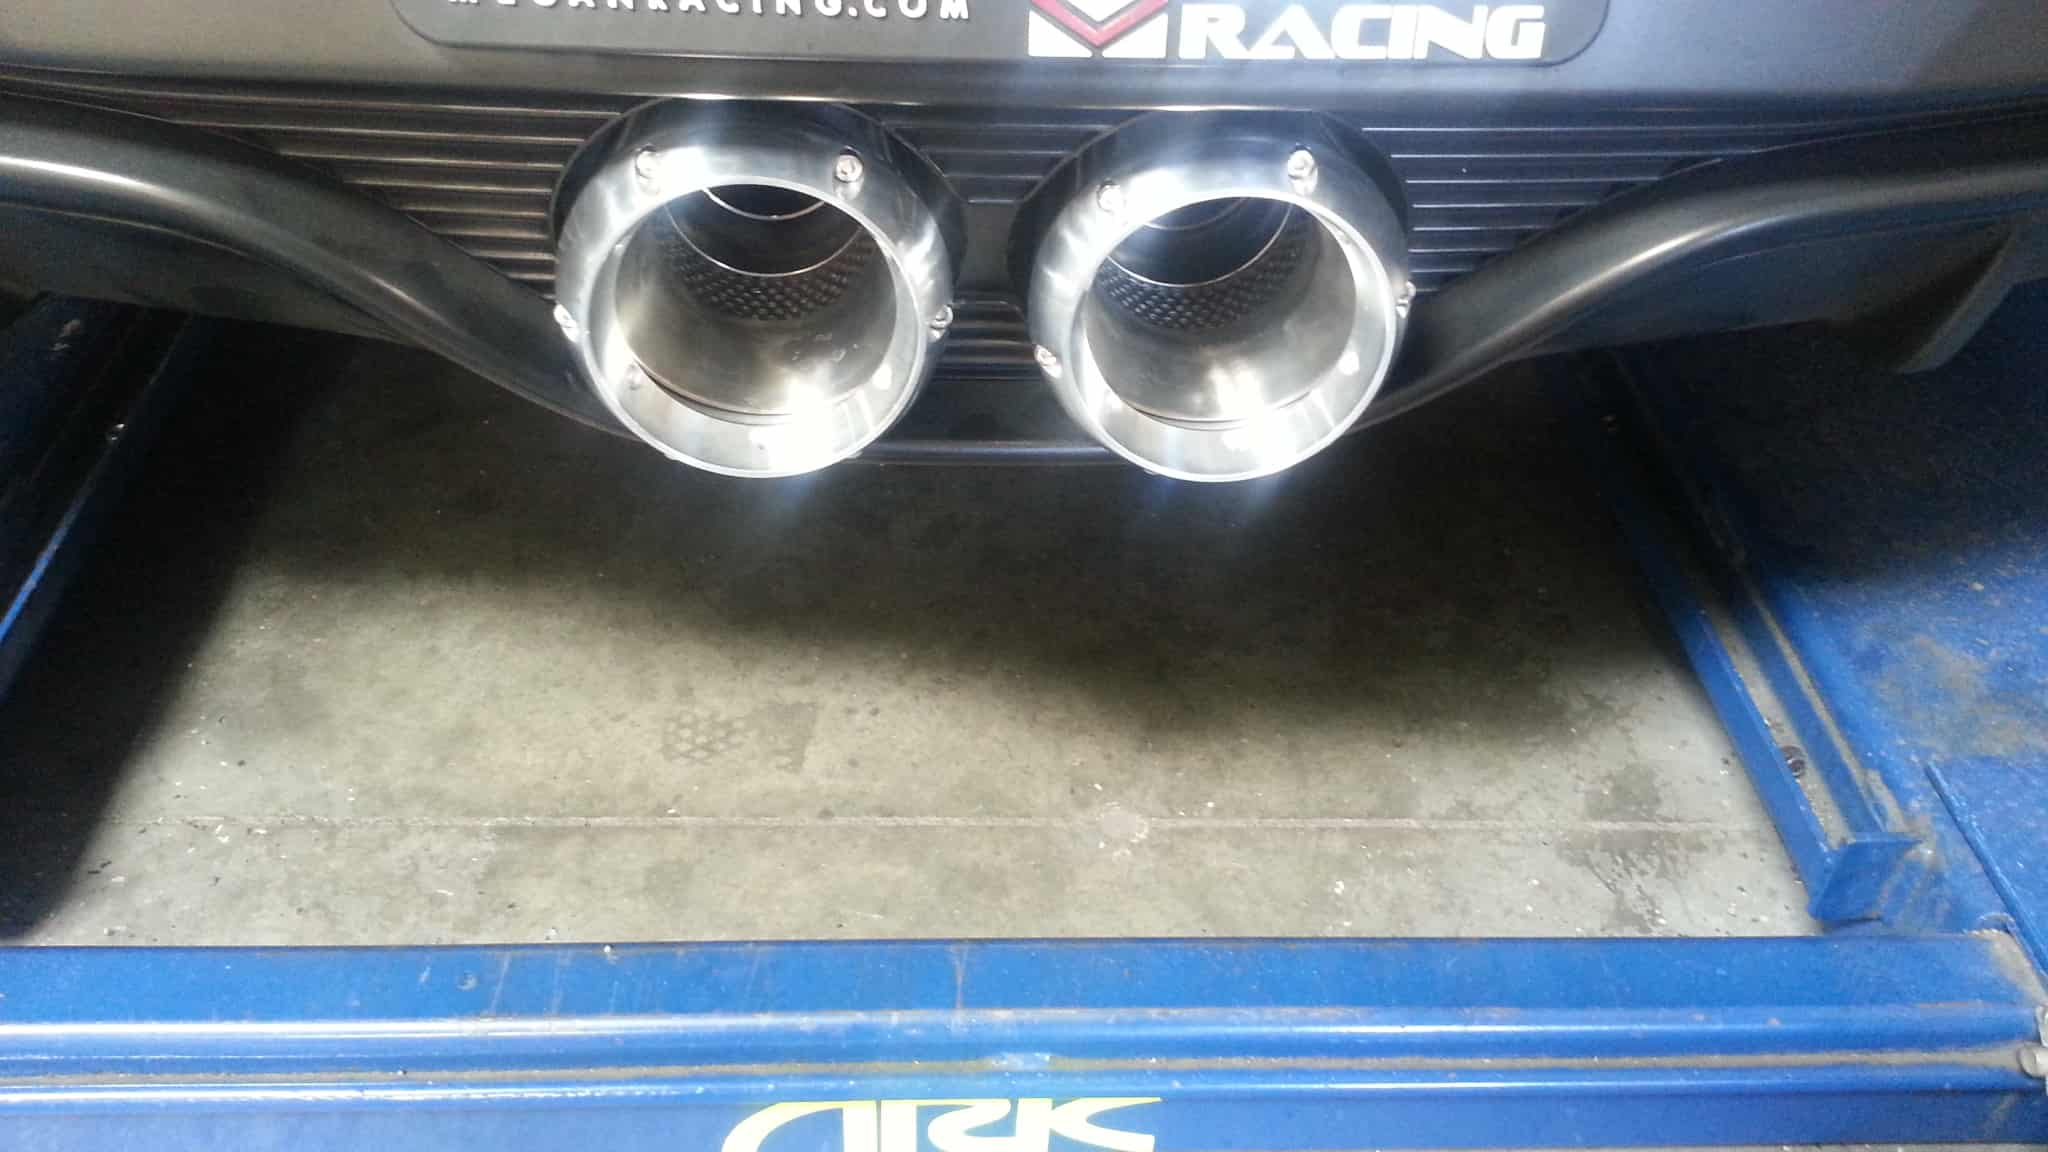 My Kia Performance >> Veloster Turbo ARK Performance DTS Exhaust Polished or ...